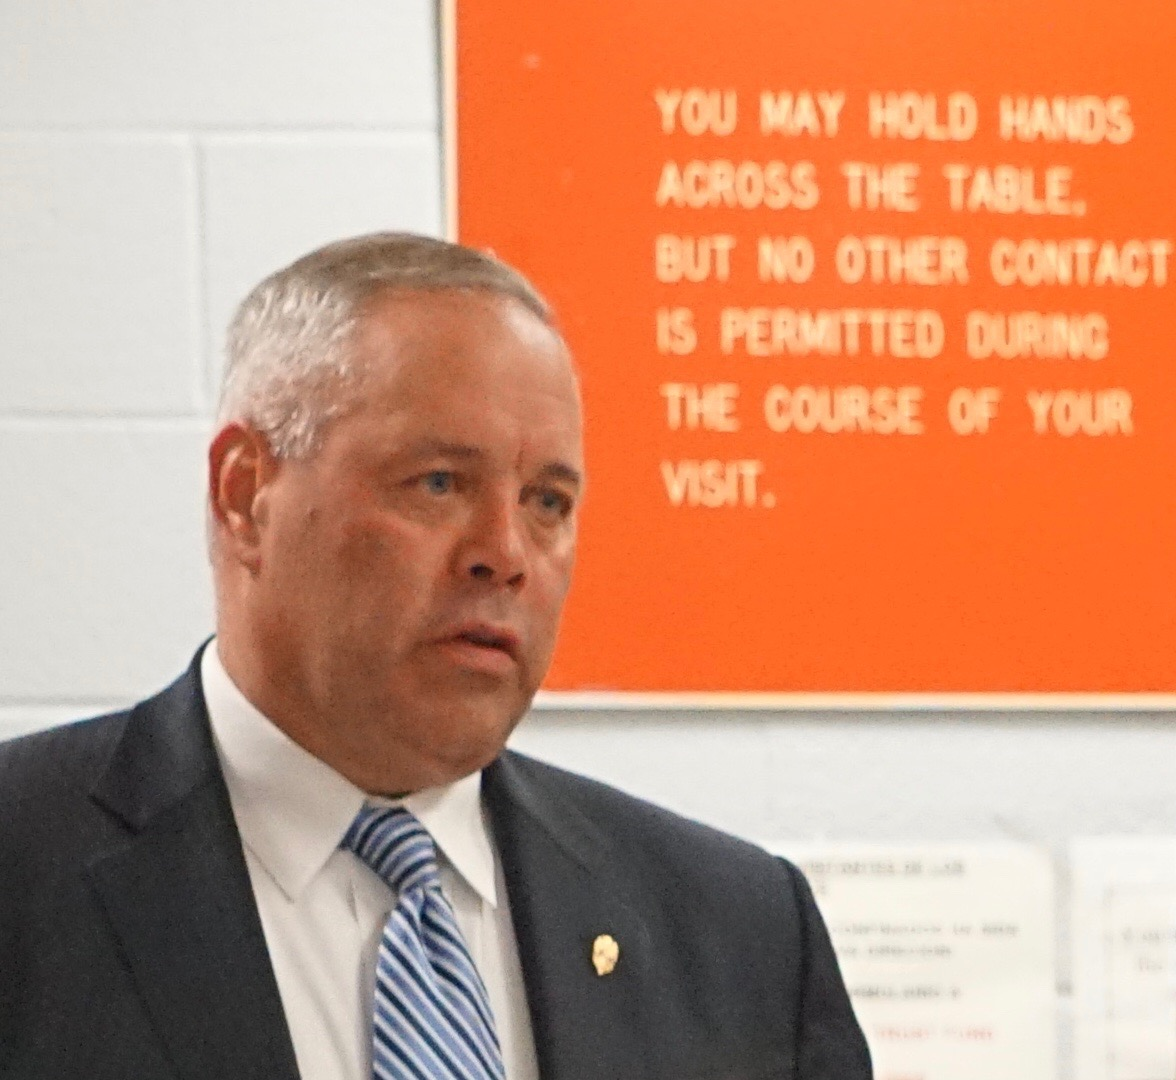 DOC commissioner sued twice in a week over prisoners' health care